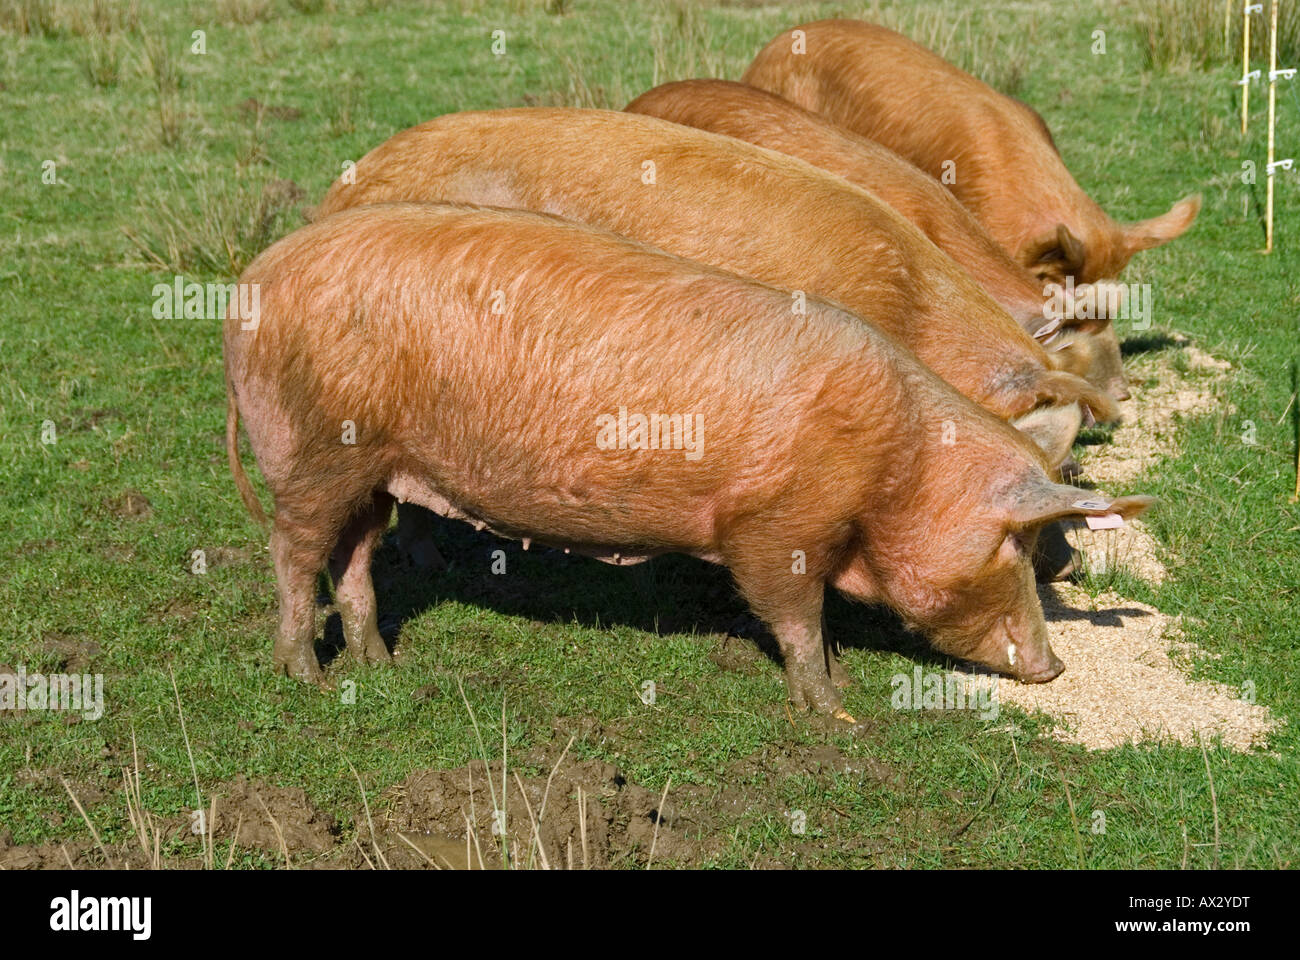 Stock Photo Of Four Tamworth Pigs Eating Their Feed The